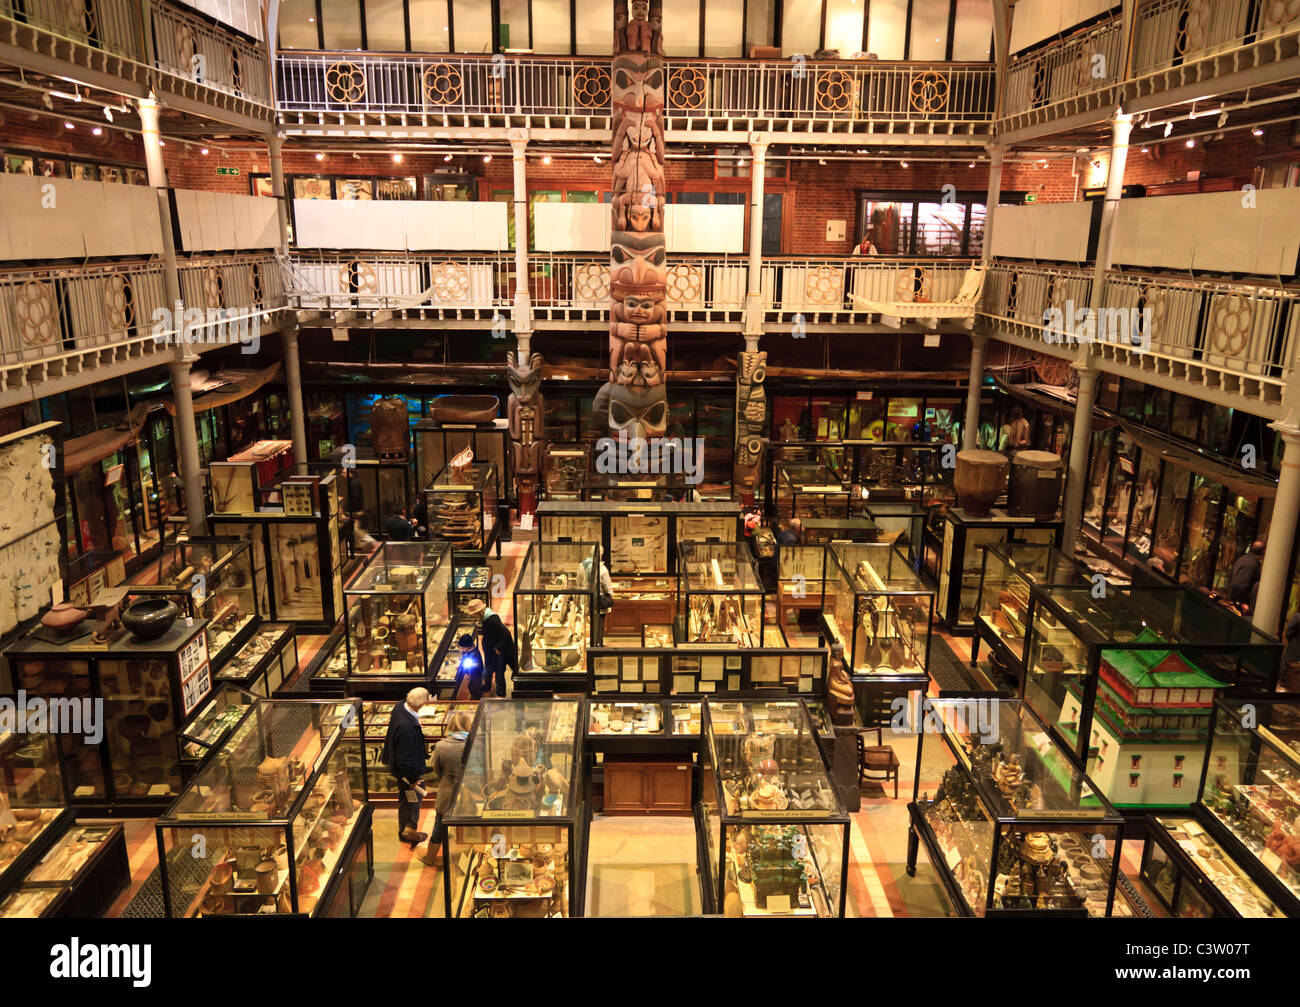 The Pitt Rivers Museum at the Oxford University Natural History Museum, Oxford, England - Stock Image